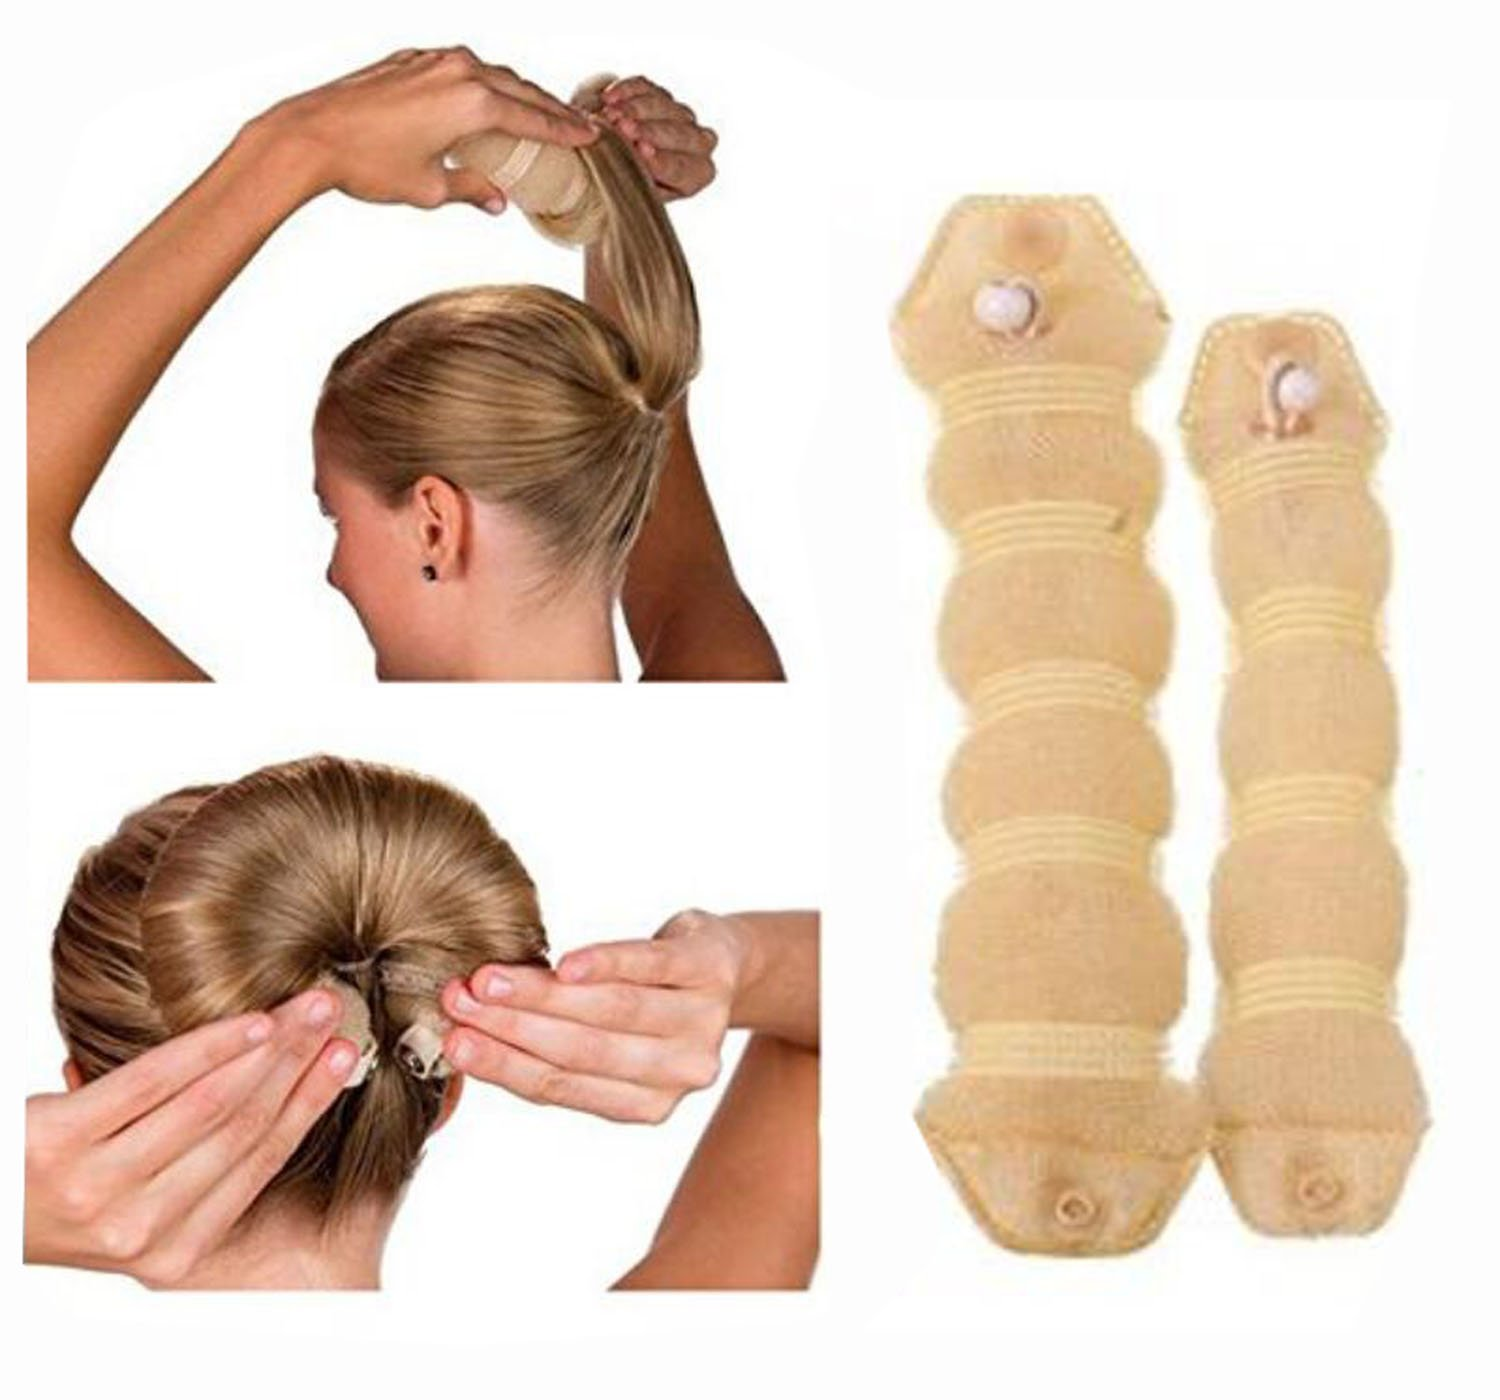 2PCS (1Large + 1 Small) Beige Magic Hair Donut Bun Maker Hair Ring Styler Tool Hot Scrunchie Chignon Roll Up Hairpiece Round Bun Updo Elastic Hair Tie Holder Bun Crown Shapers For Women Girls Lady ​ TUPWEL-1